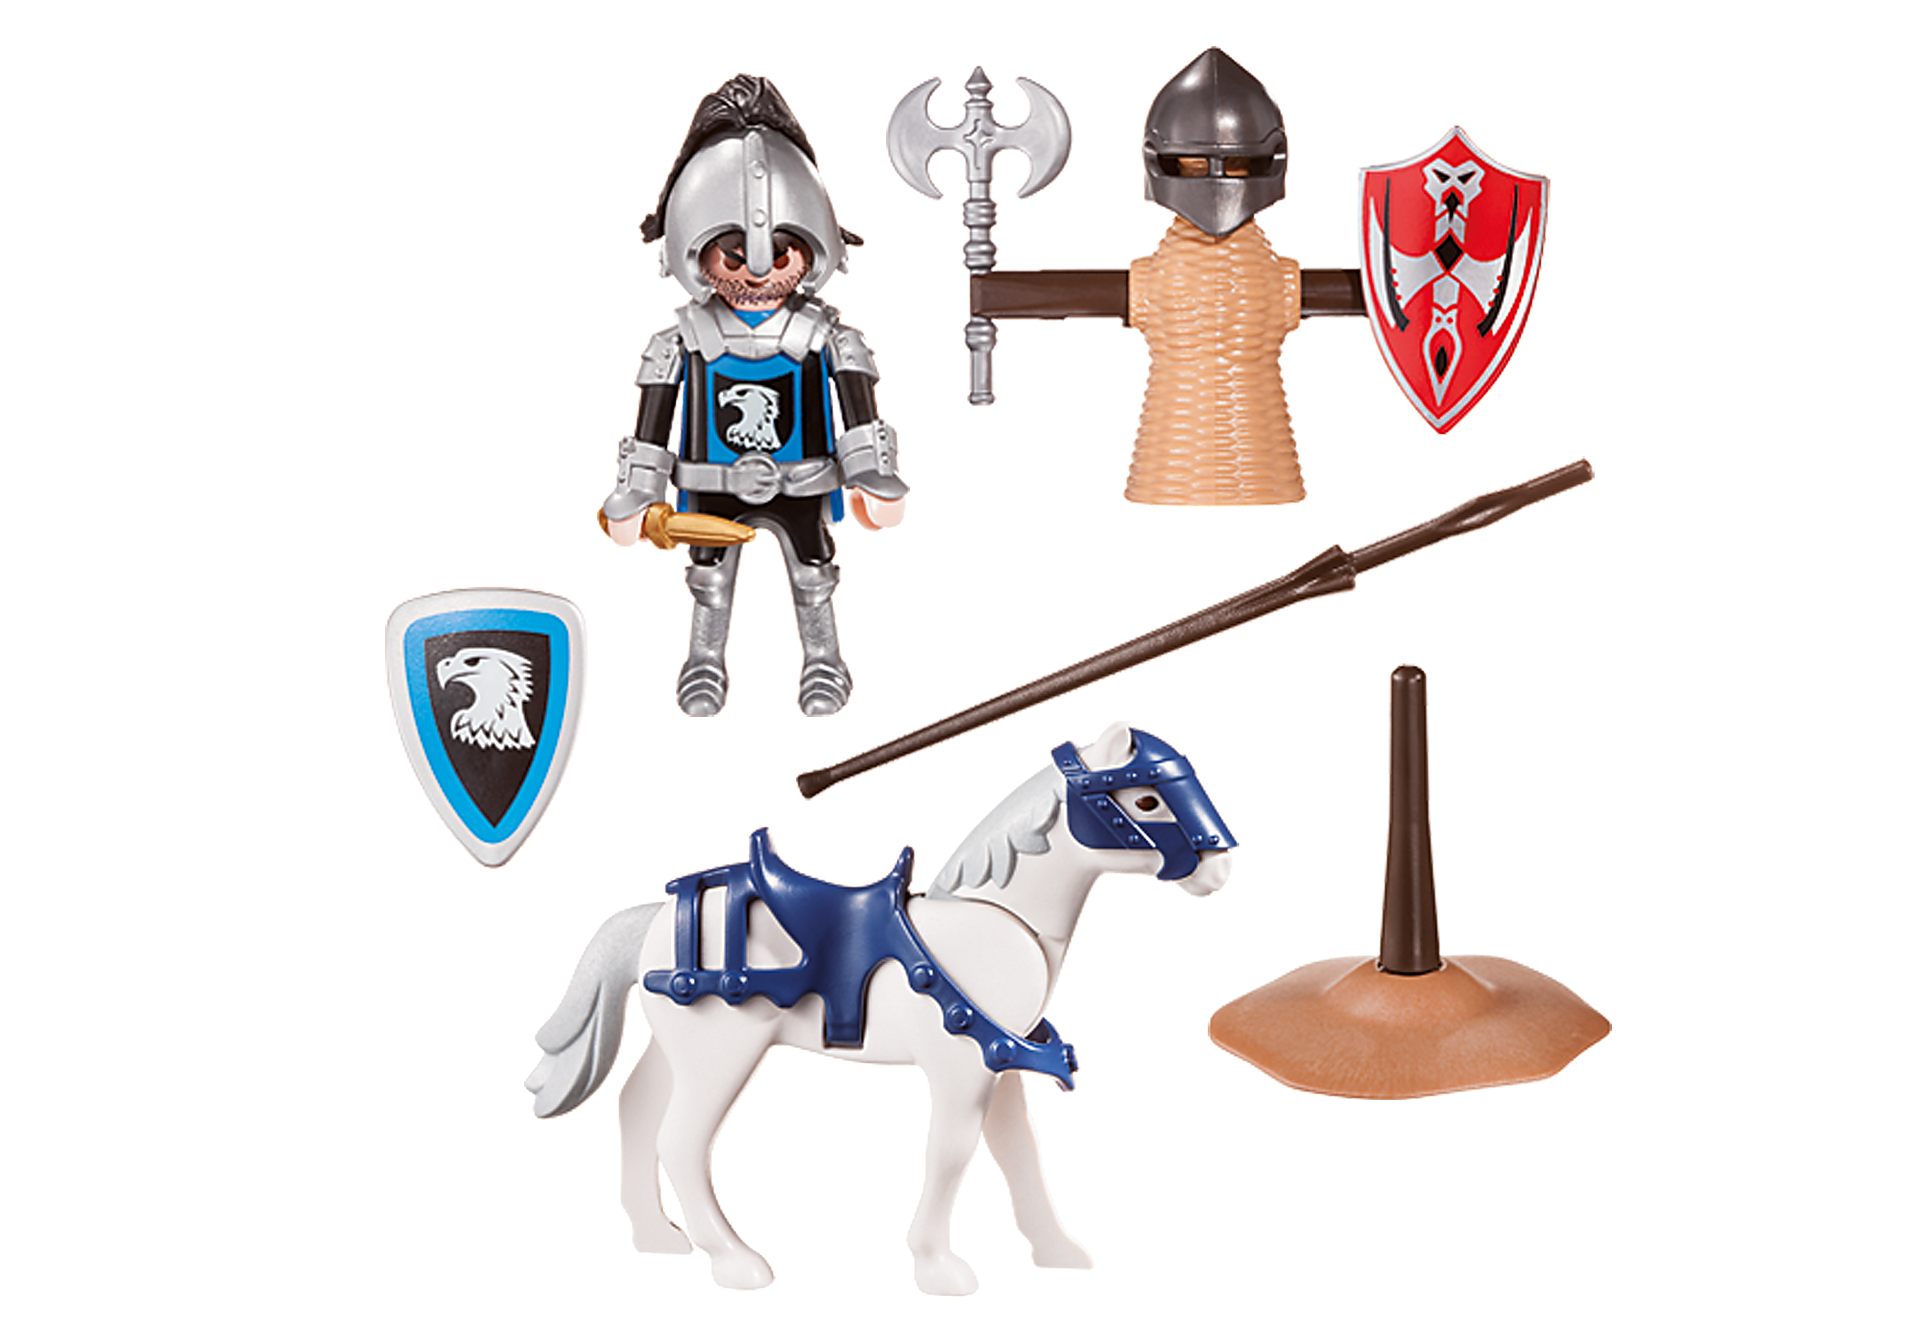 70106 Knights Jousting Carry Case S zoom image3